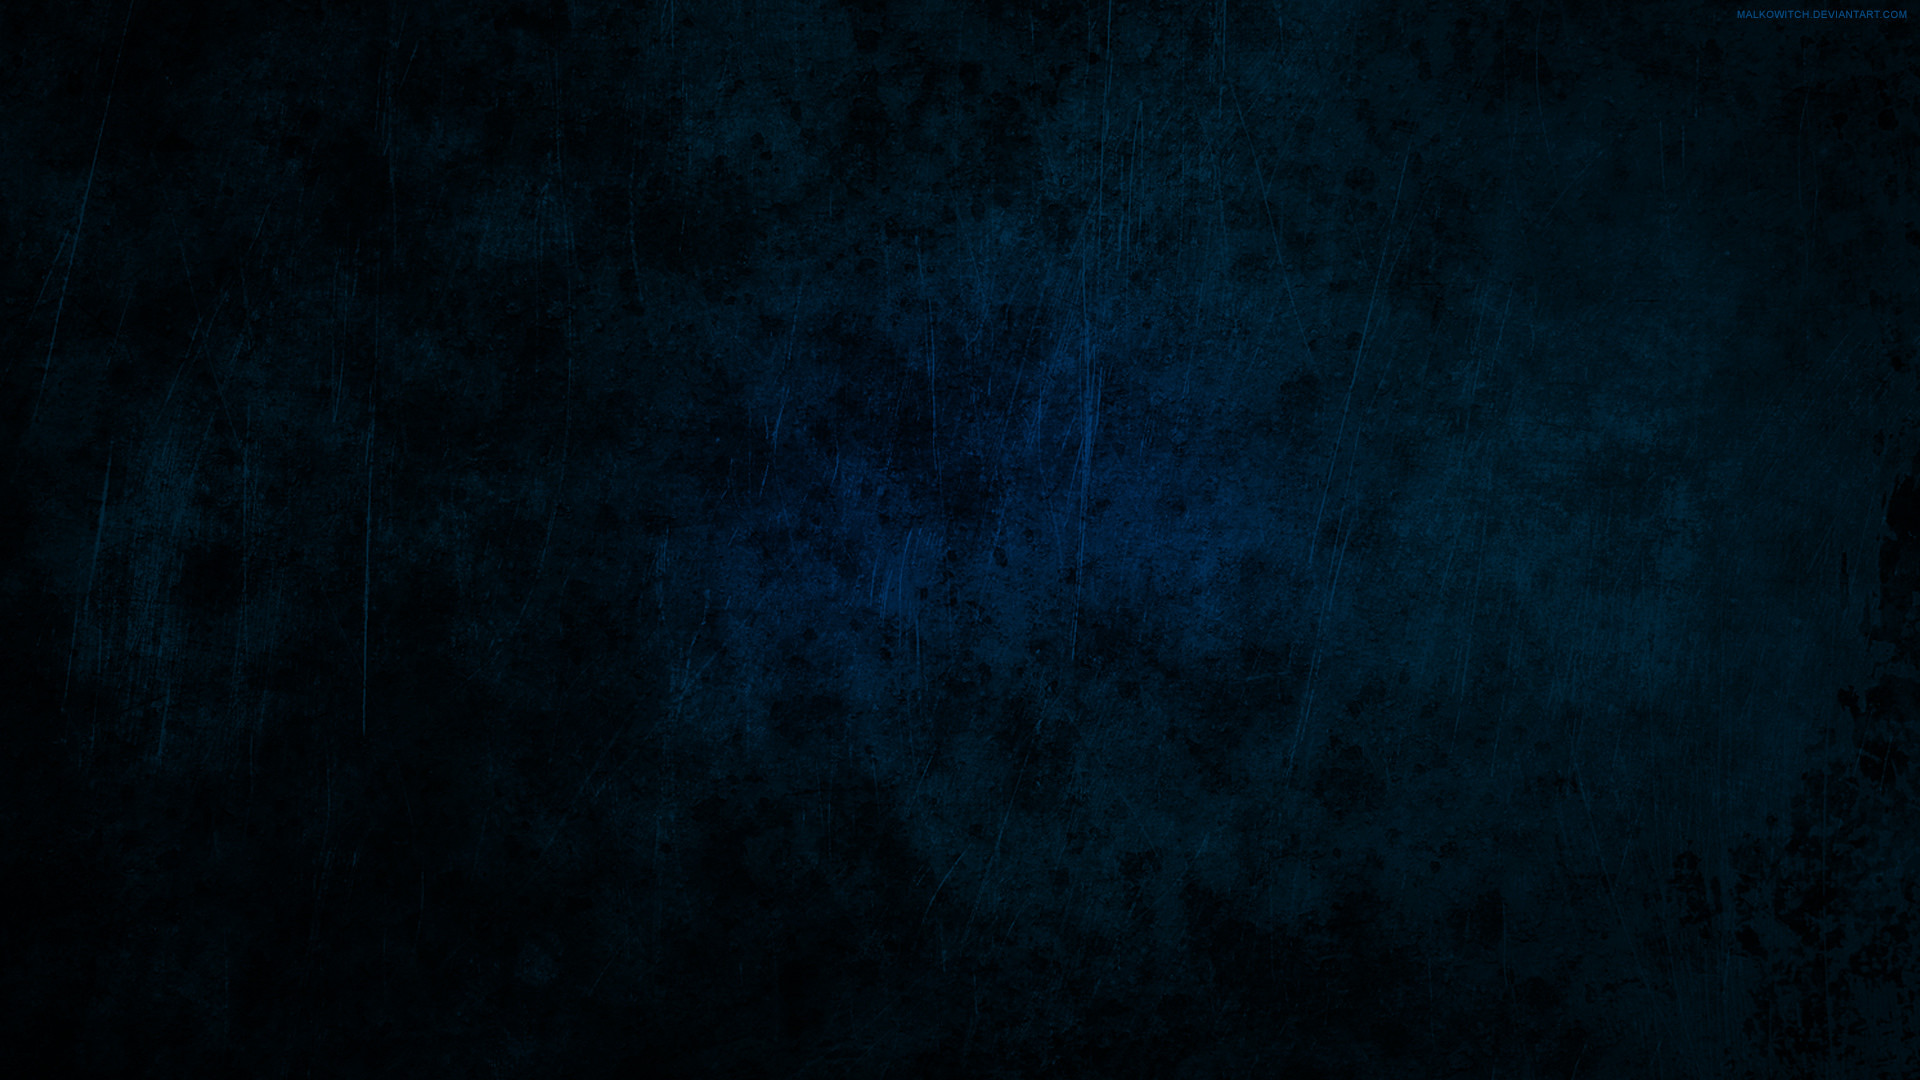 dark blue background wallpaper 183��